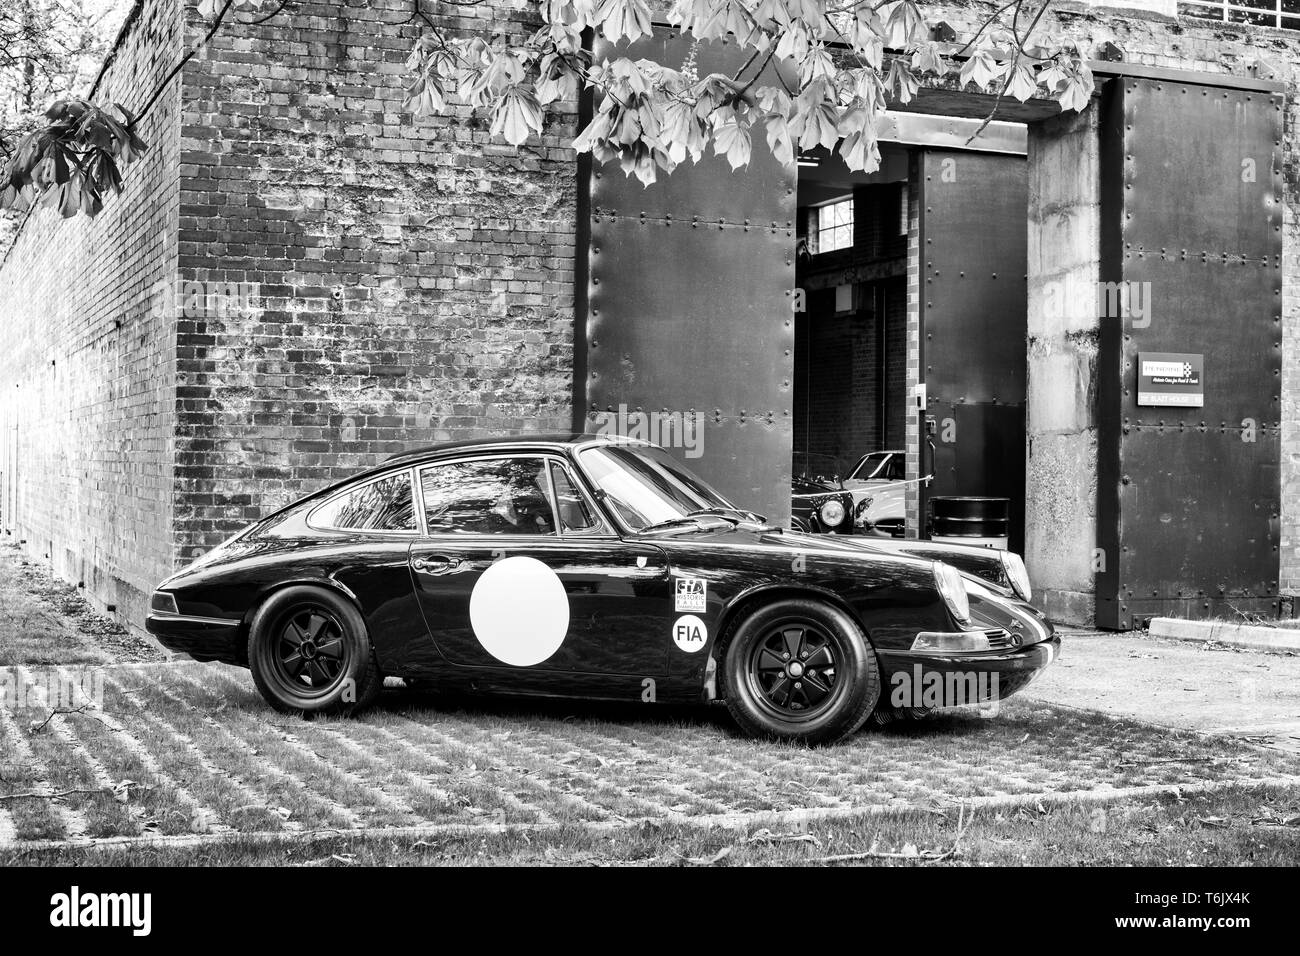 1965 Porsche 911 SWB Competition Car in front of a workshop at Bicester heritage centre 'Drive It Day'.Bicester, Oxfordshire, England. Black and White - Stock Image